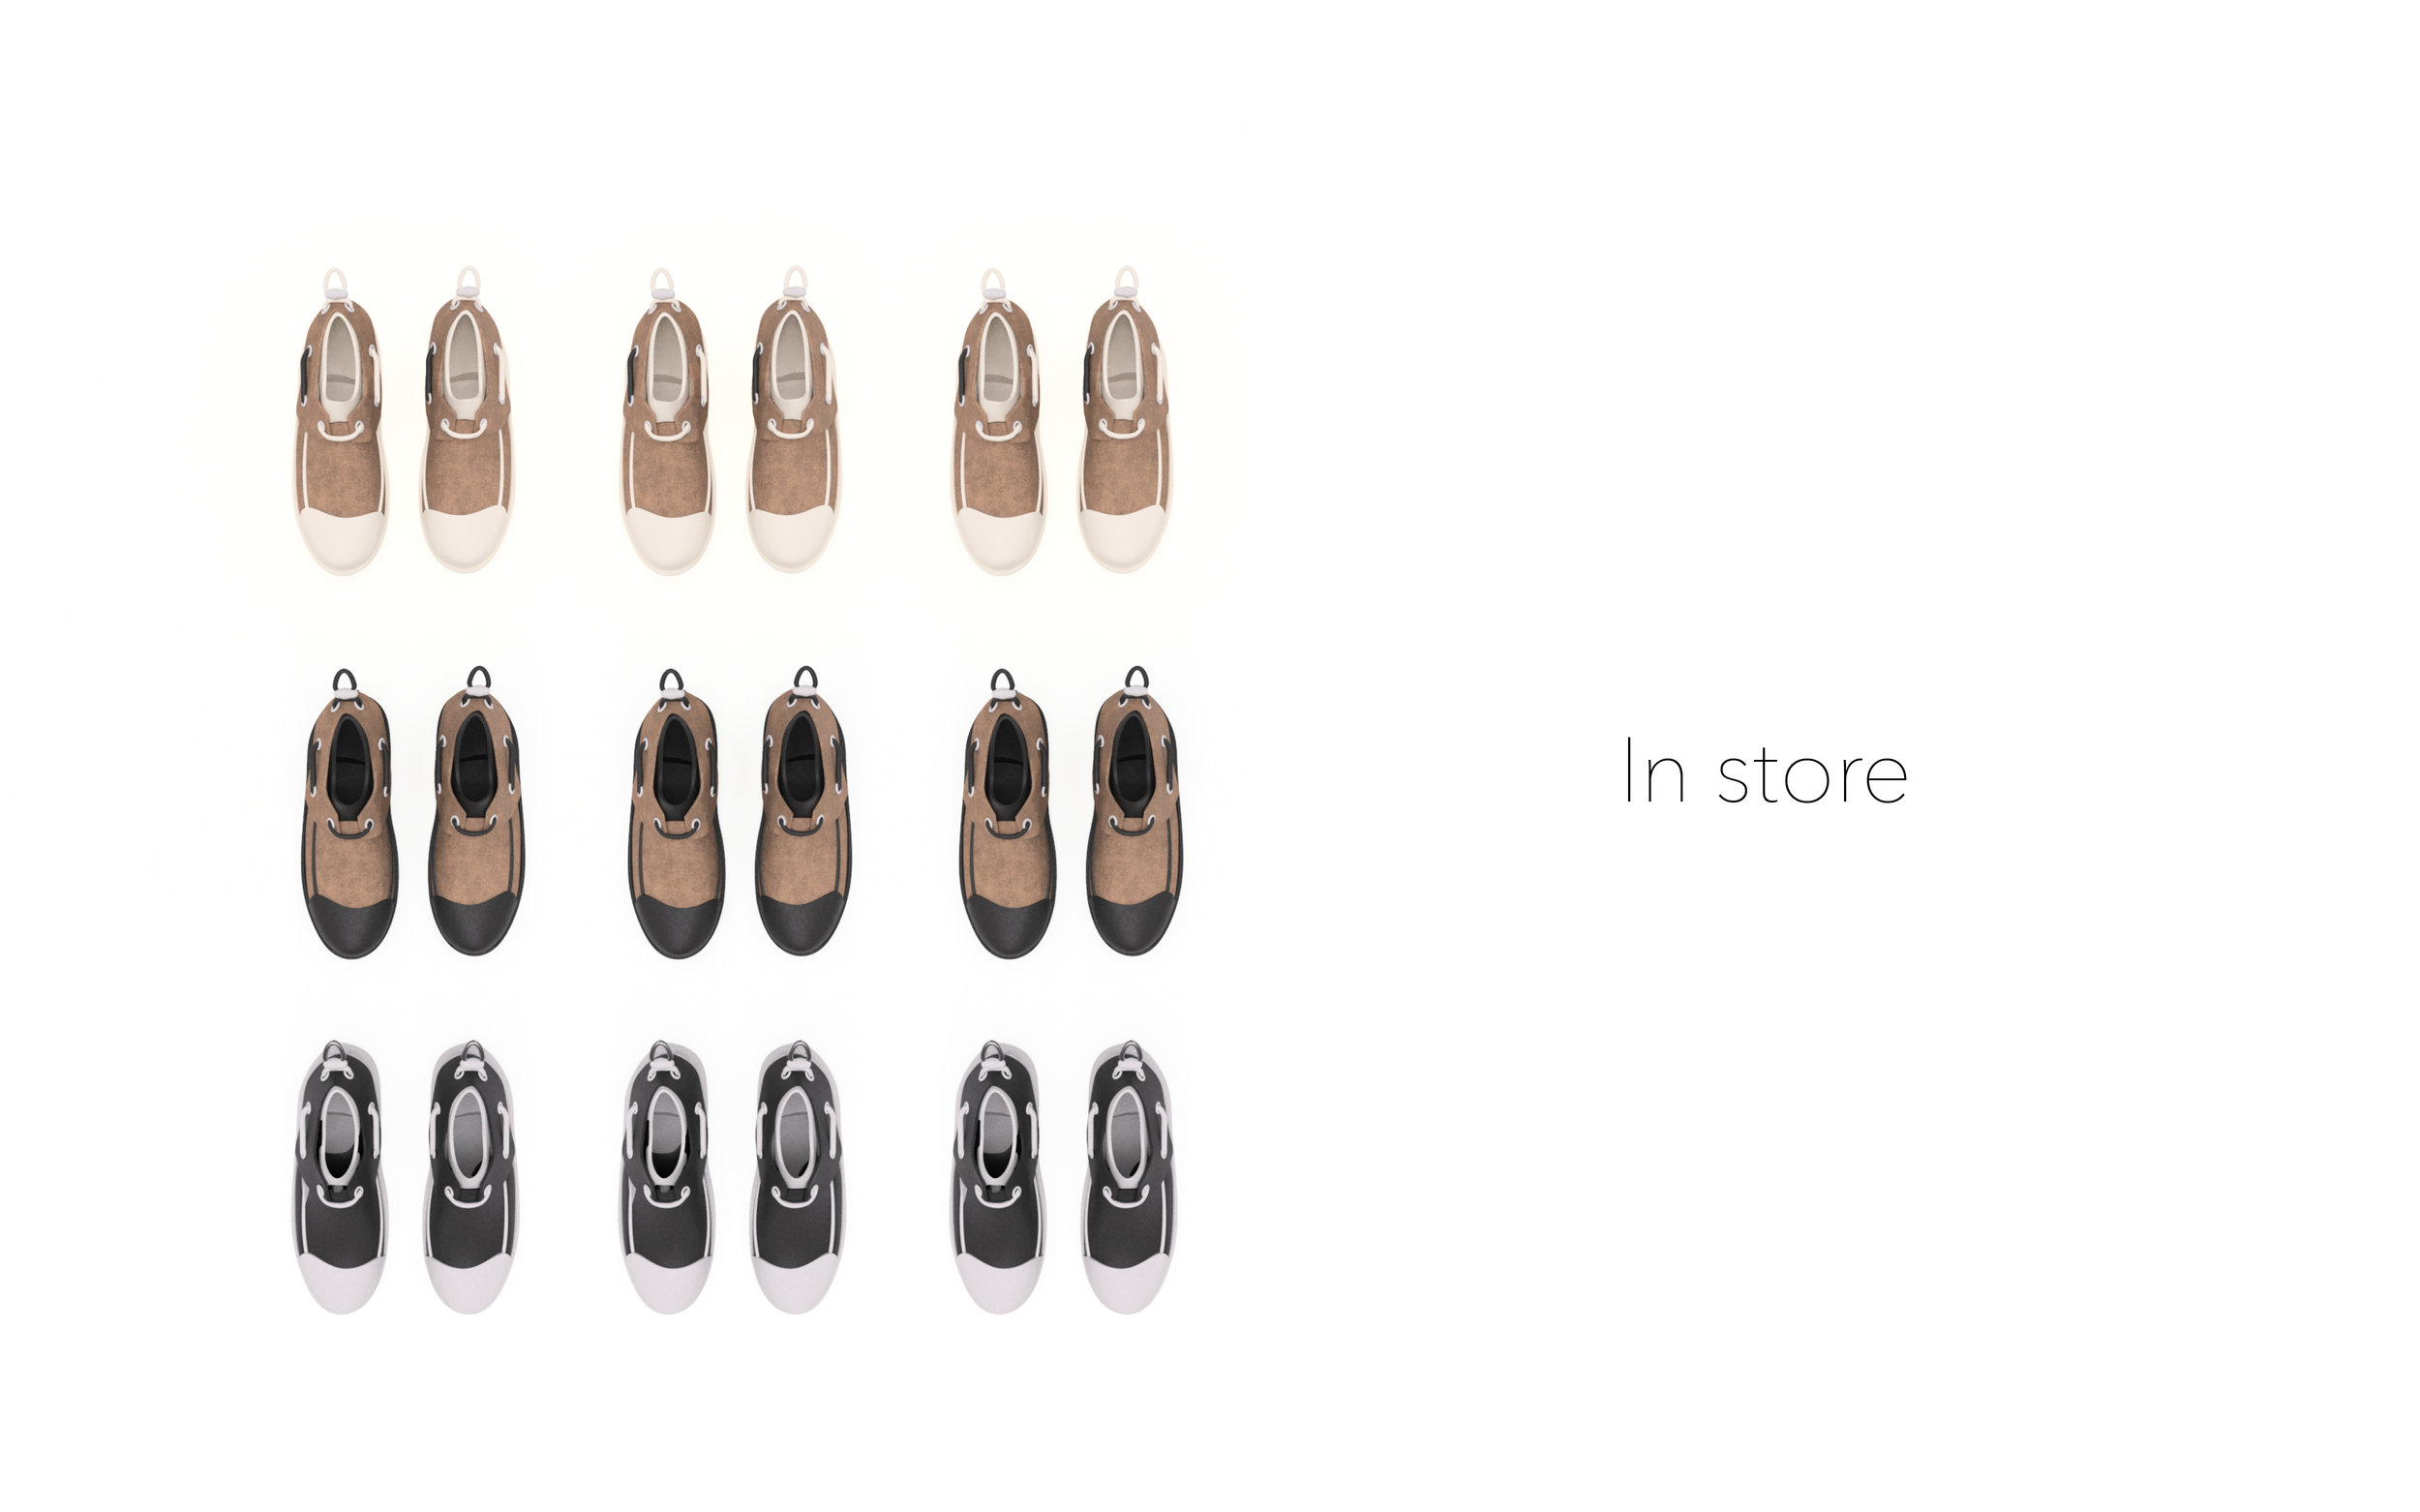 sperry website10.jpg